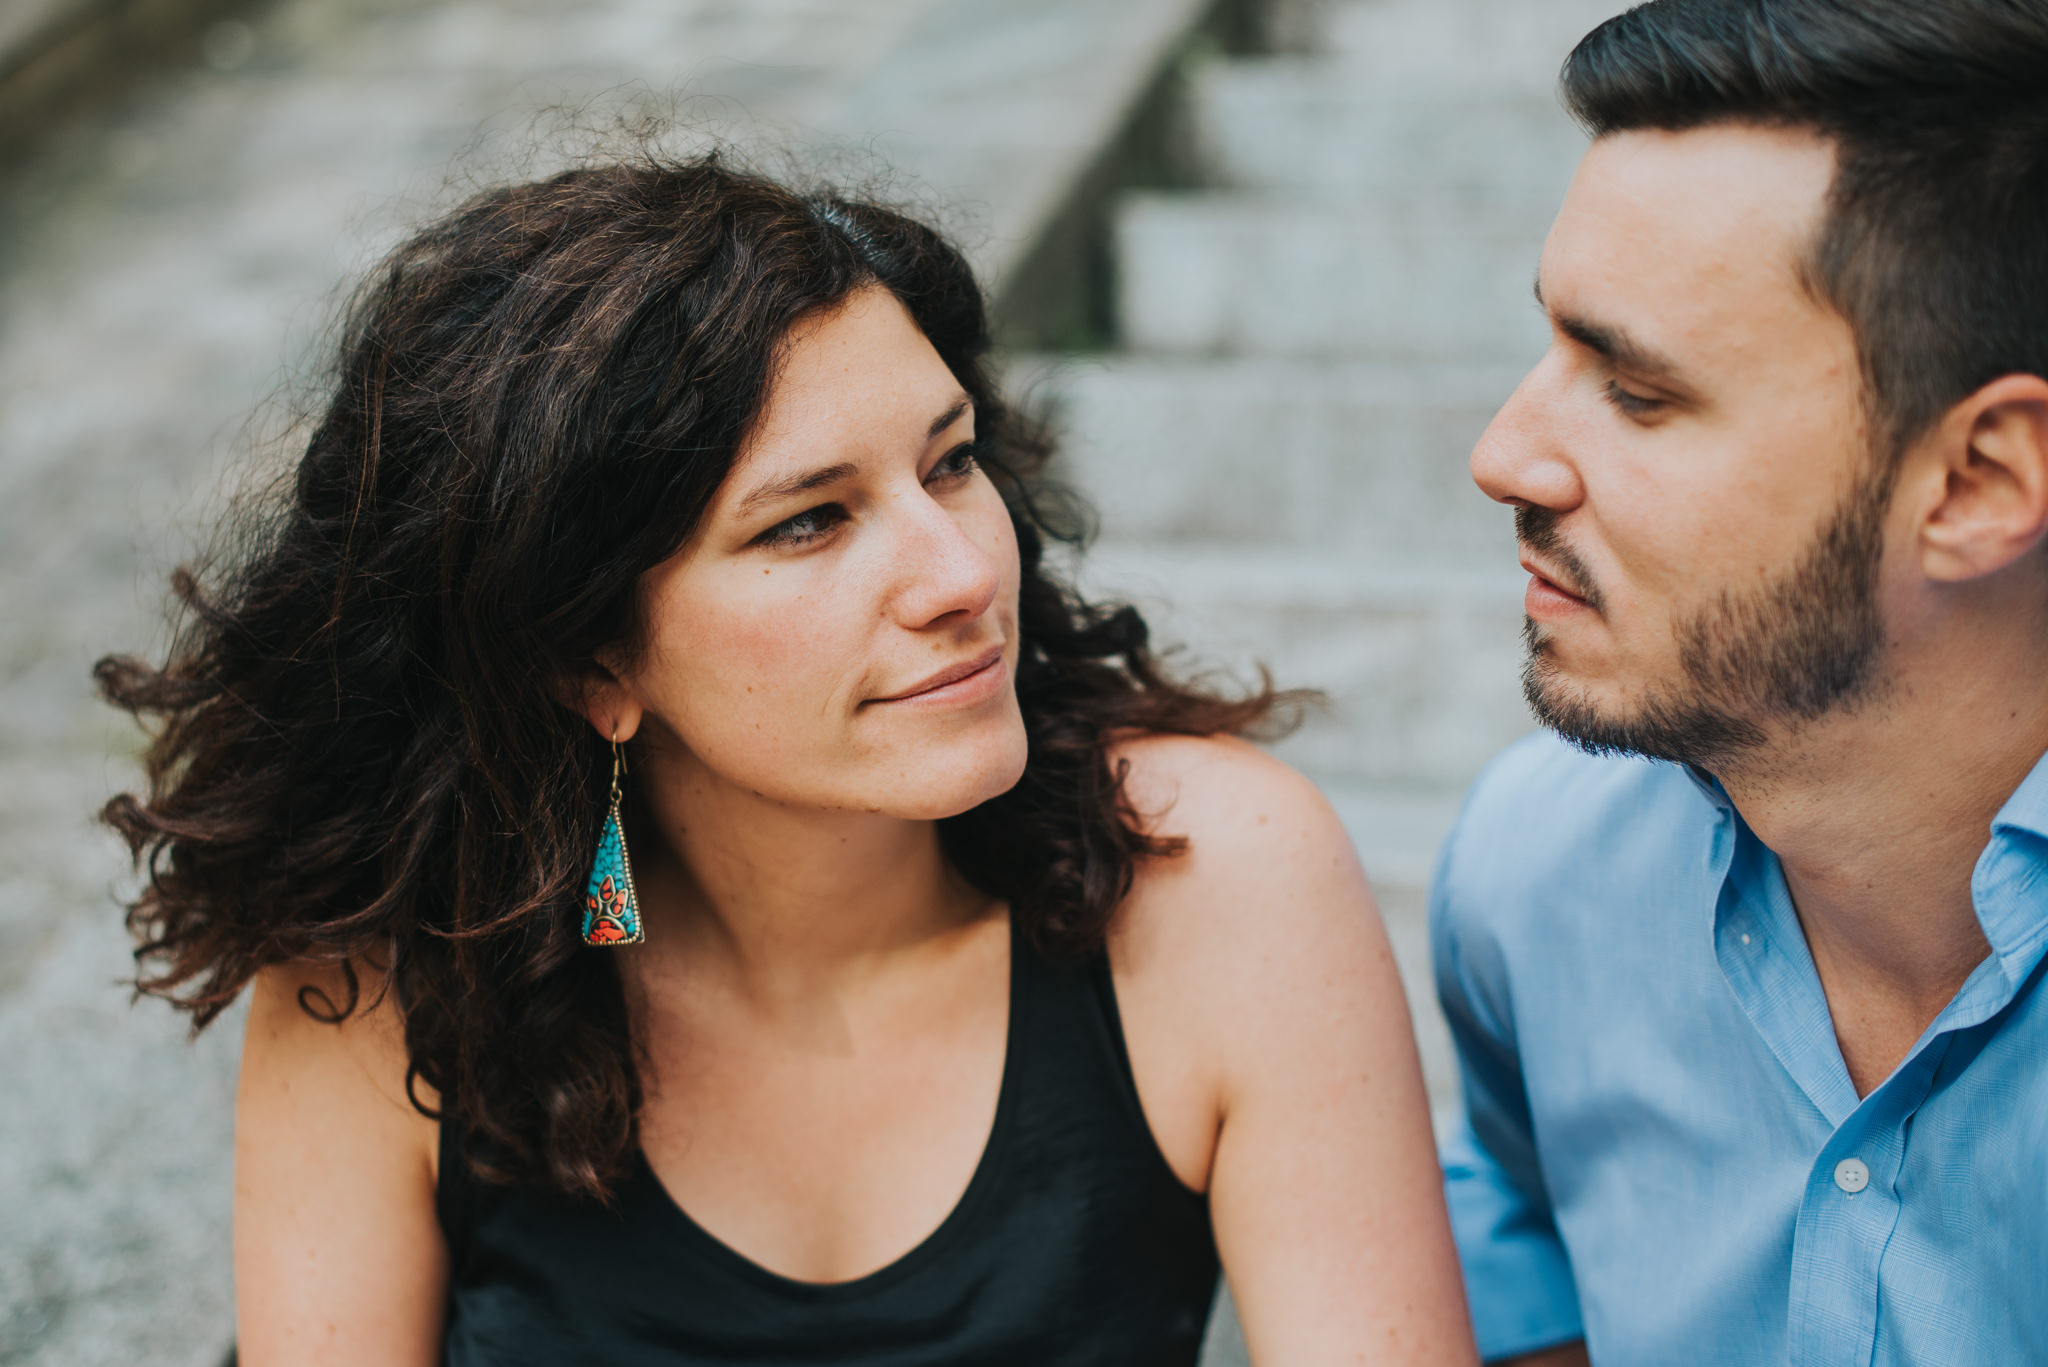 Close up of woman looking at man that she loves, sitting on steps